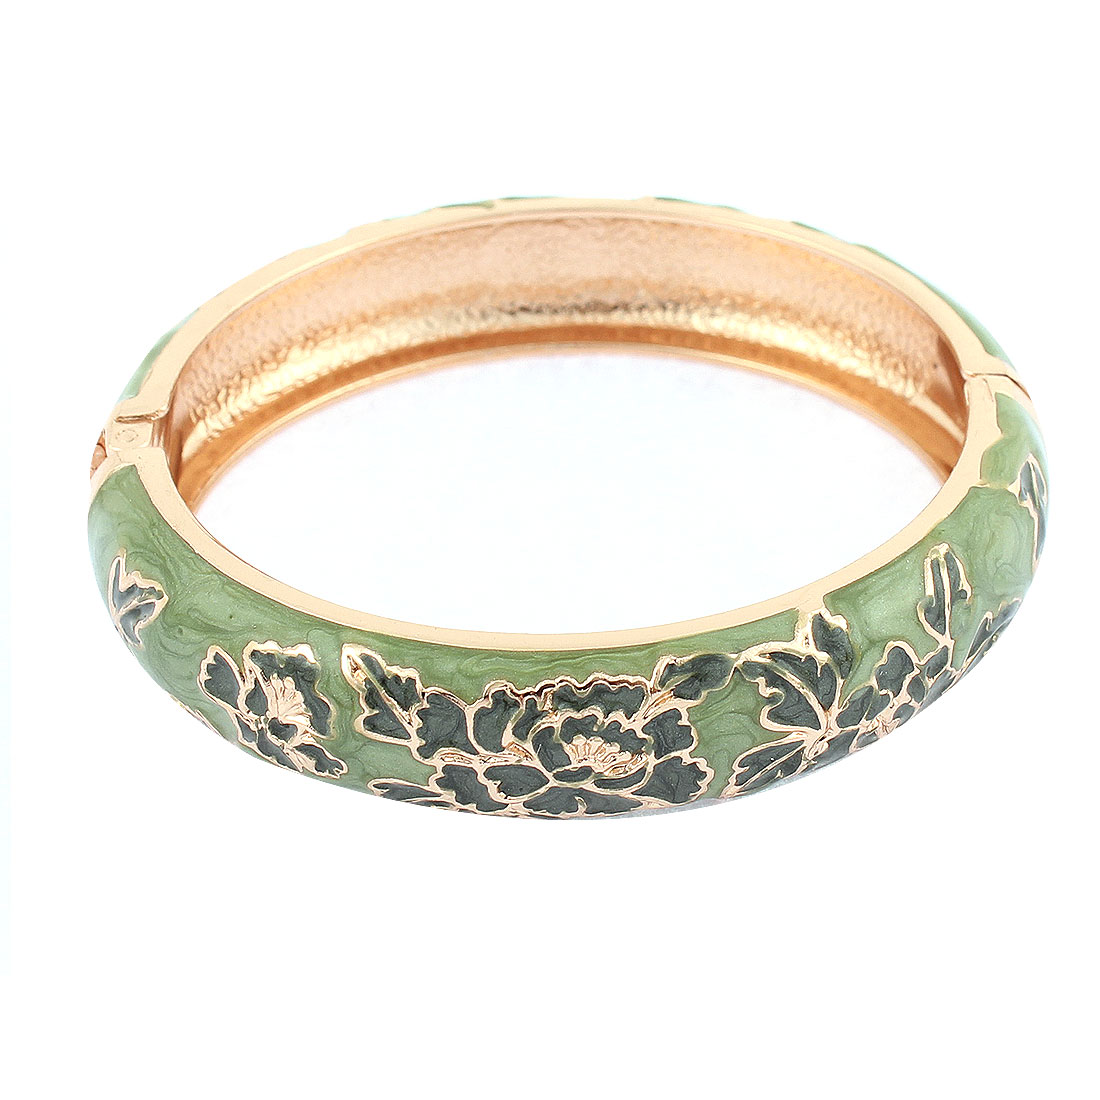 Lady Party Wear Spring Closure Flower Enamel Bracelet Bangle Craft Olive Green